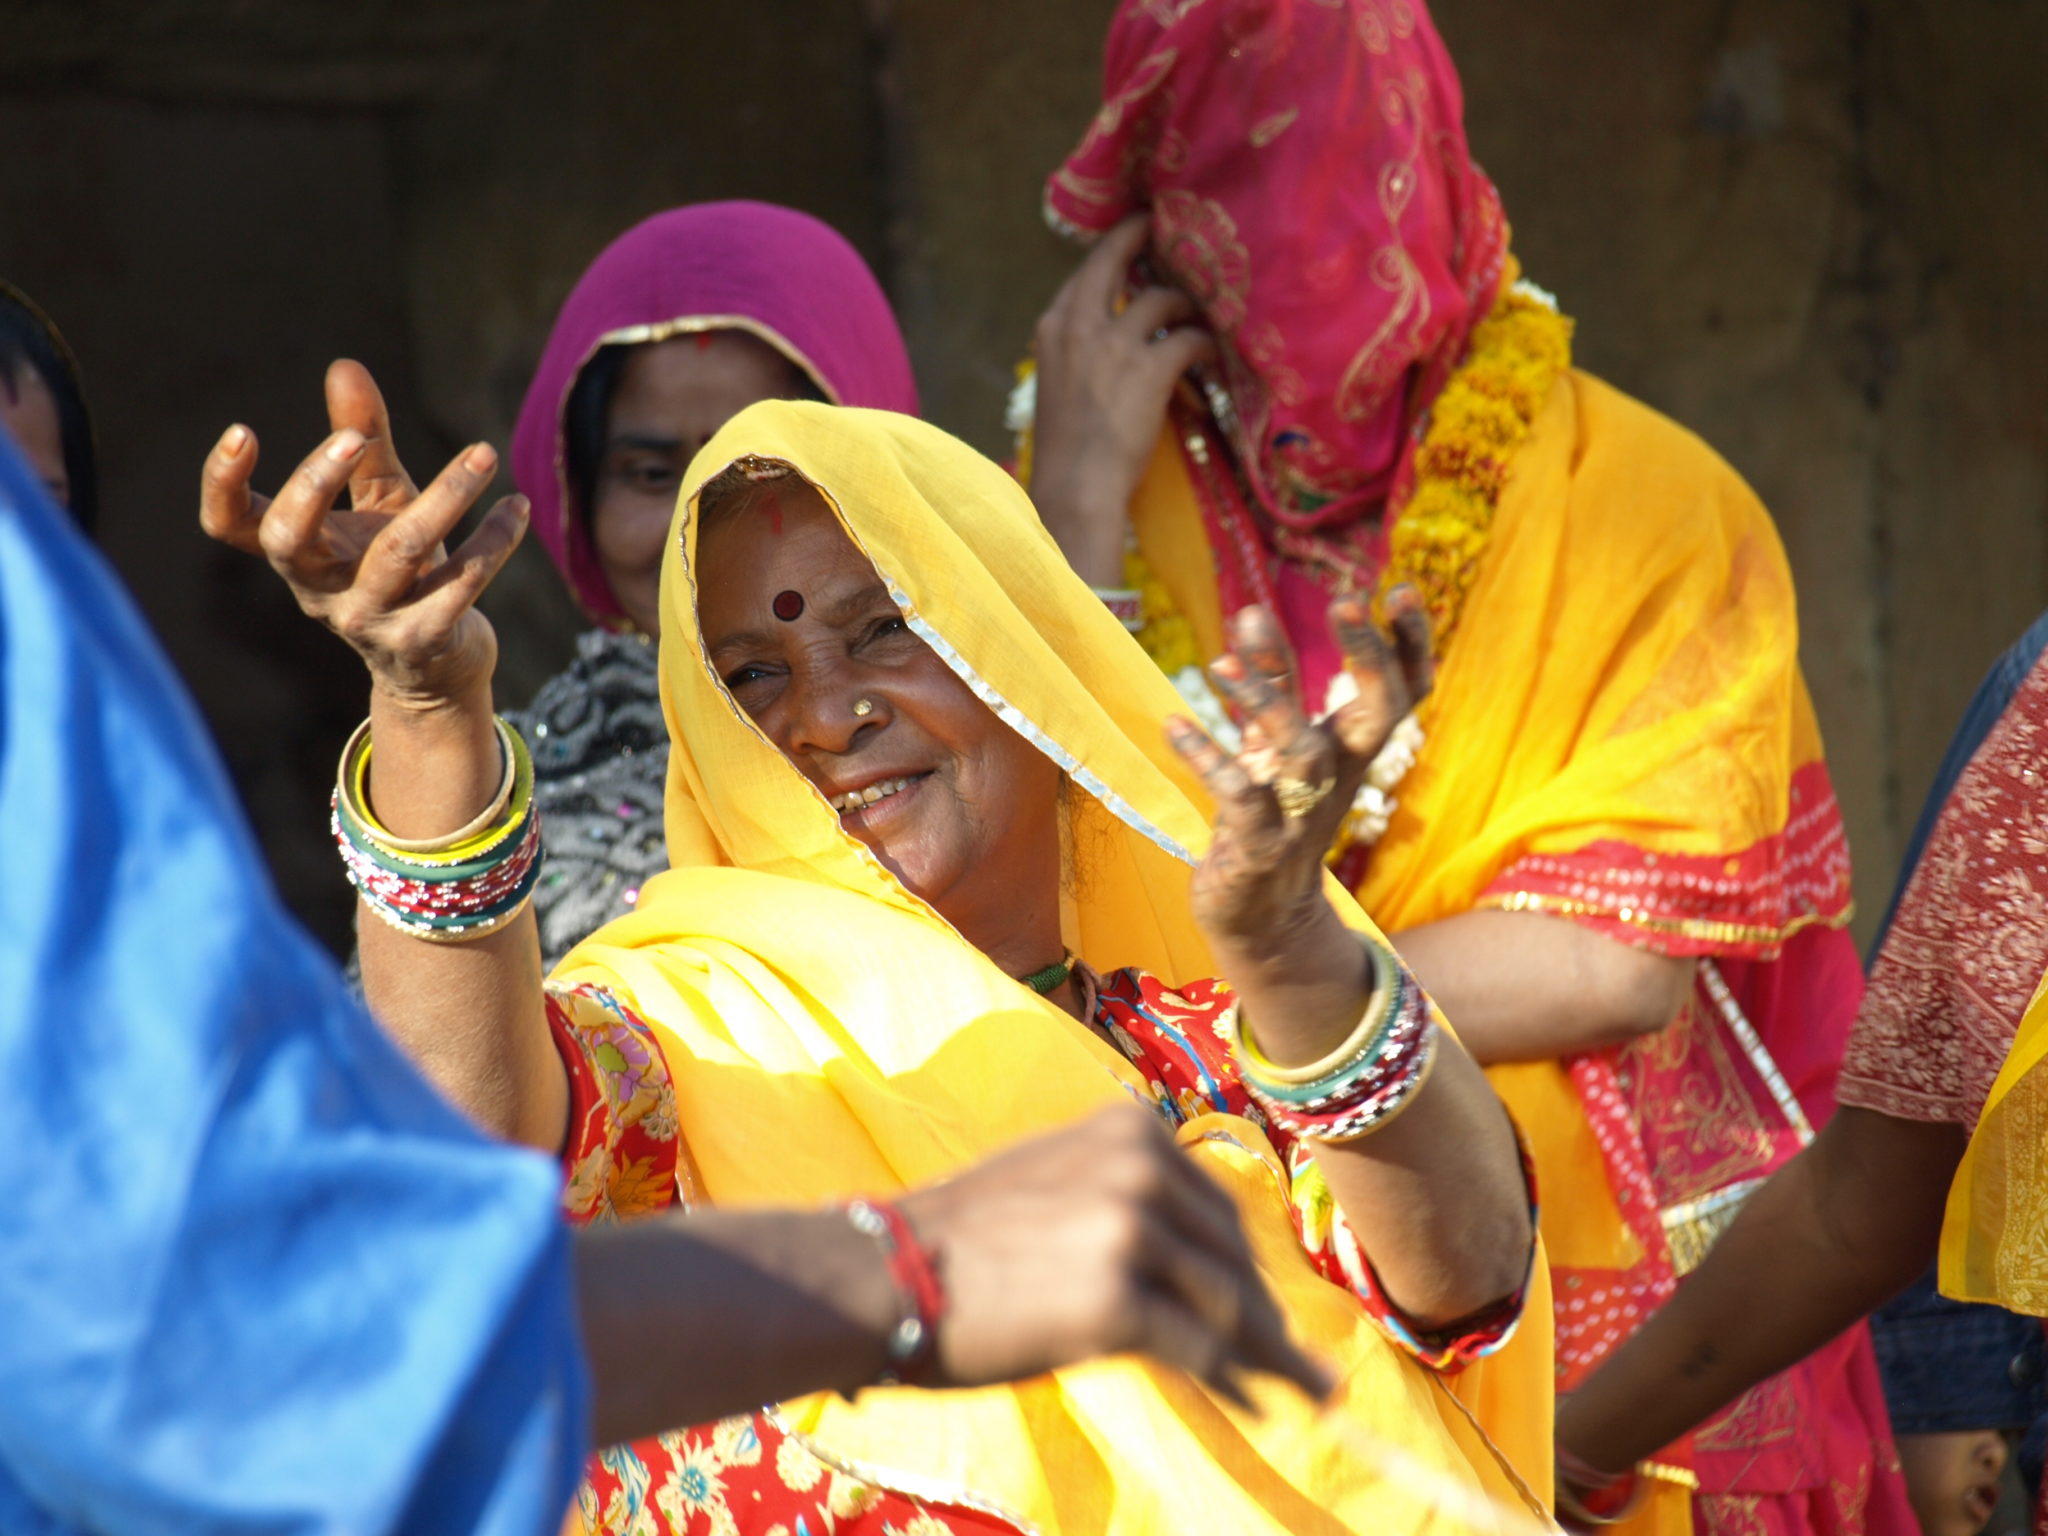 Rajasthani ceremony with the dancing women in traditional outfit. India holiday packages with a difference.